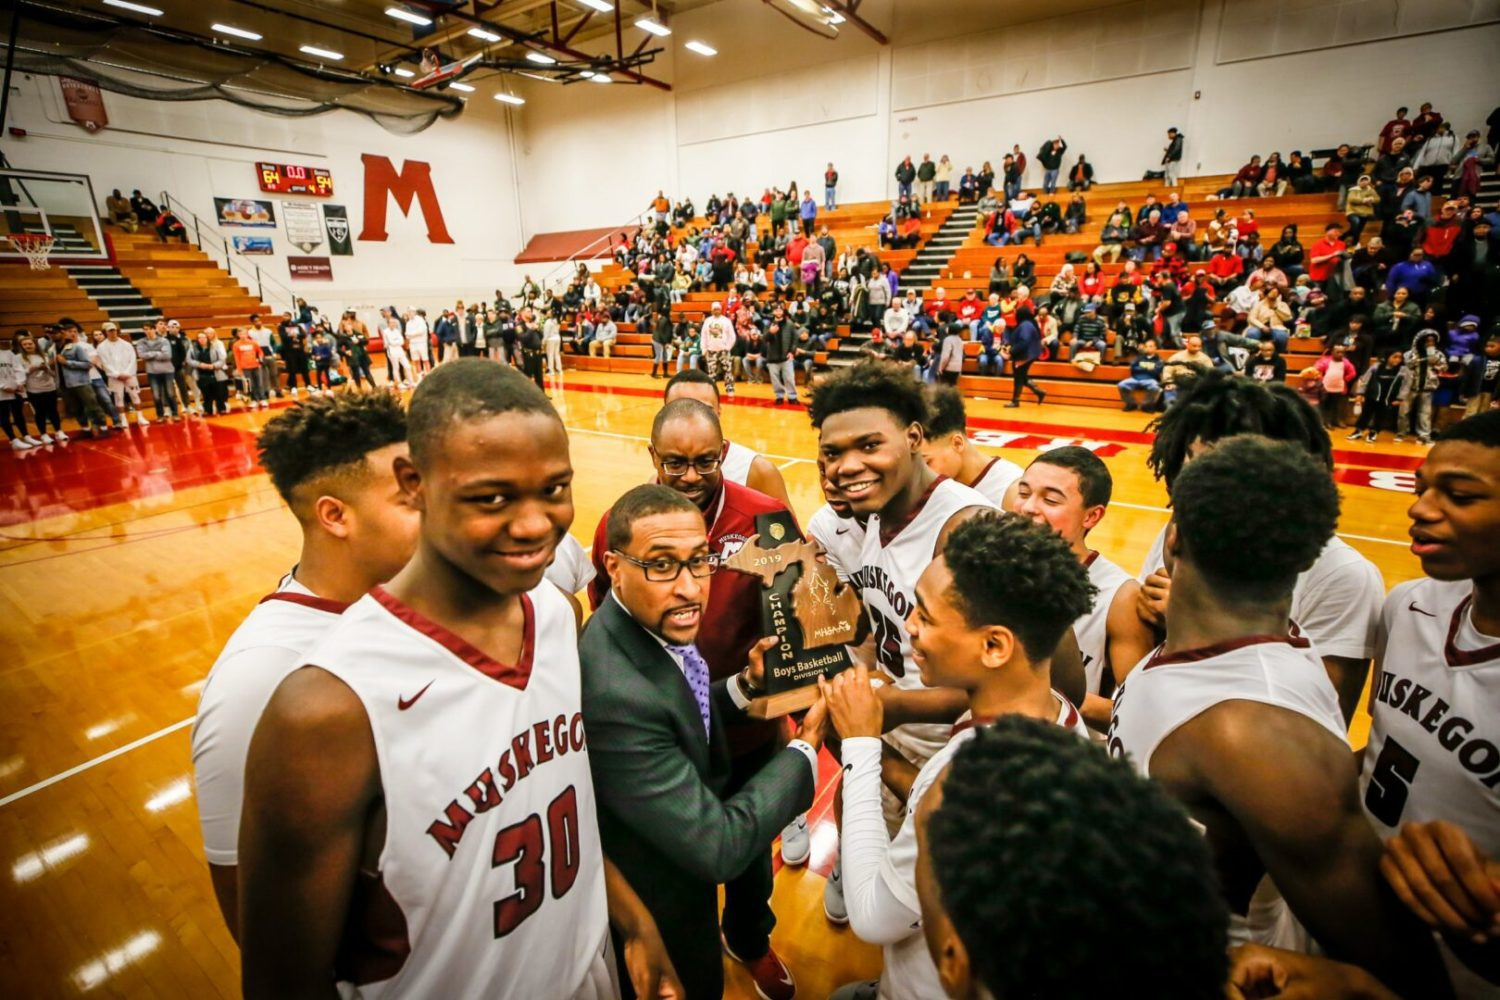 Big Red Coach Keith Guy's district title streak reaches an amazing 16 straight seasons